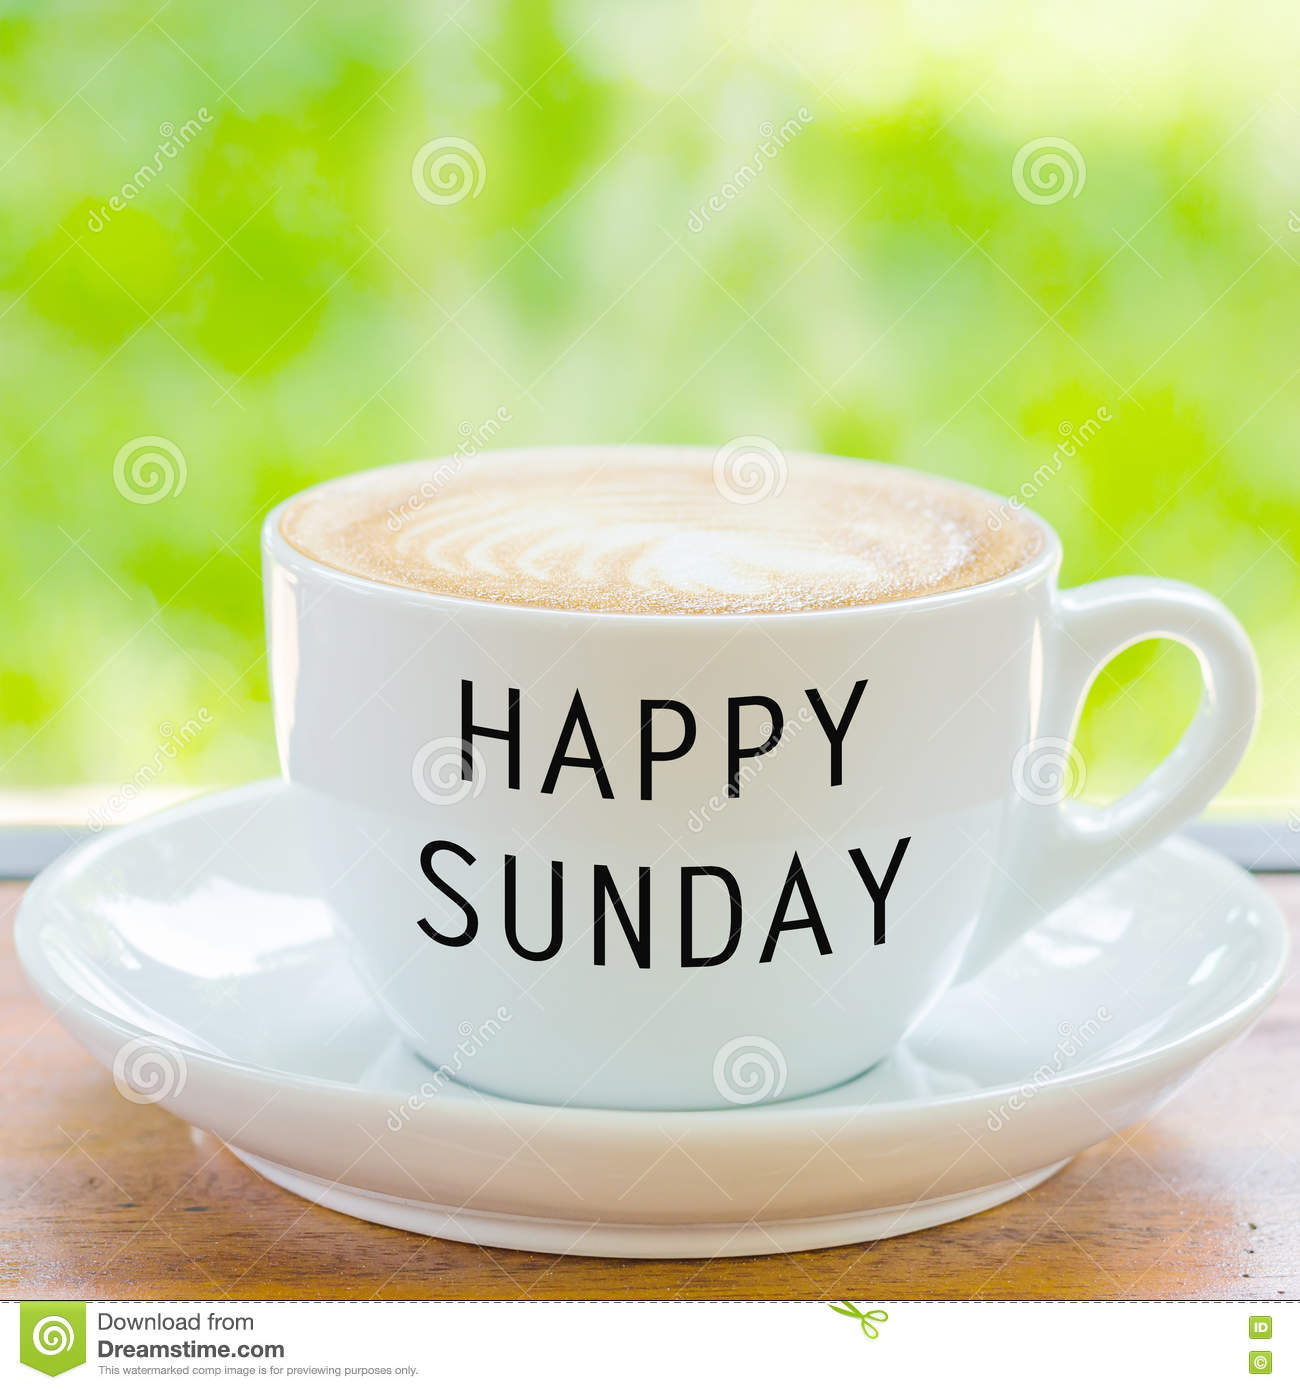 Happy Sunday On Coffee Cup Stock Photo Image Of Closeup 73937938